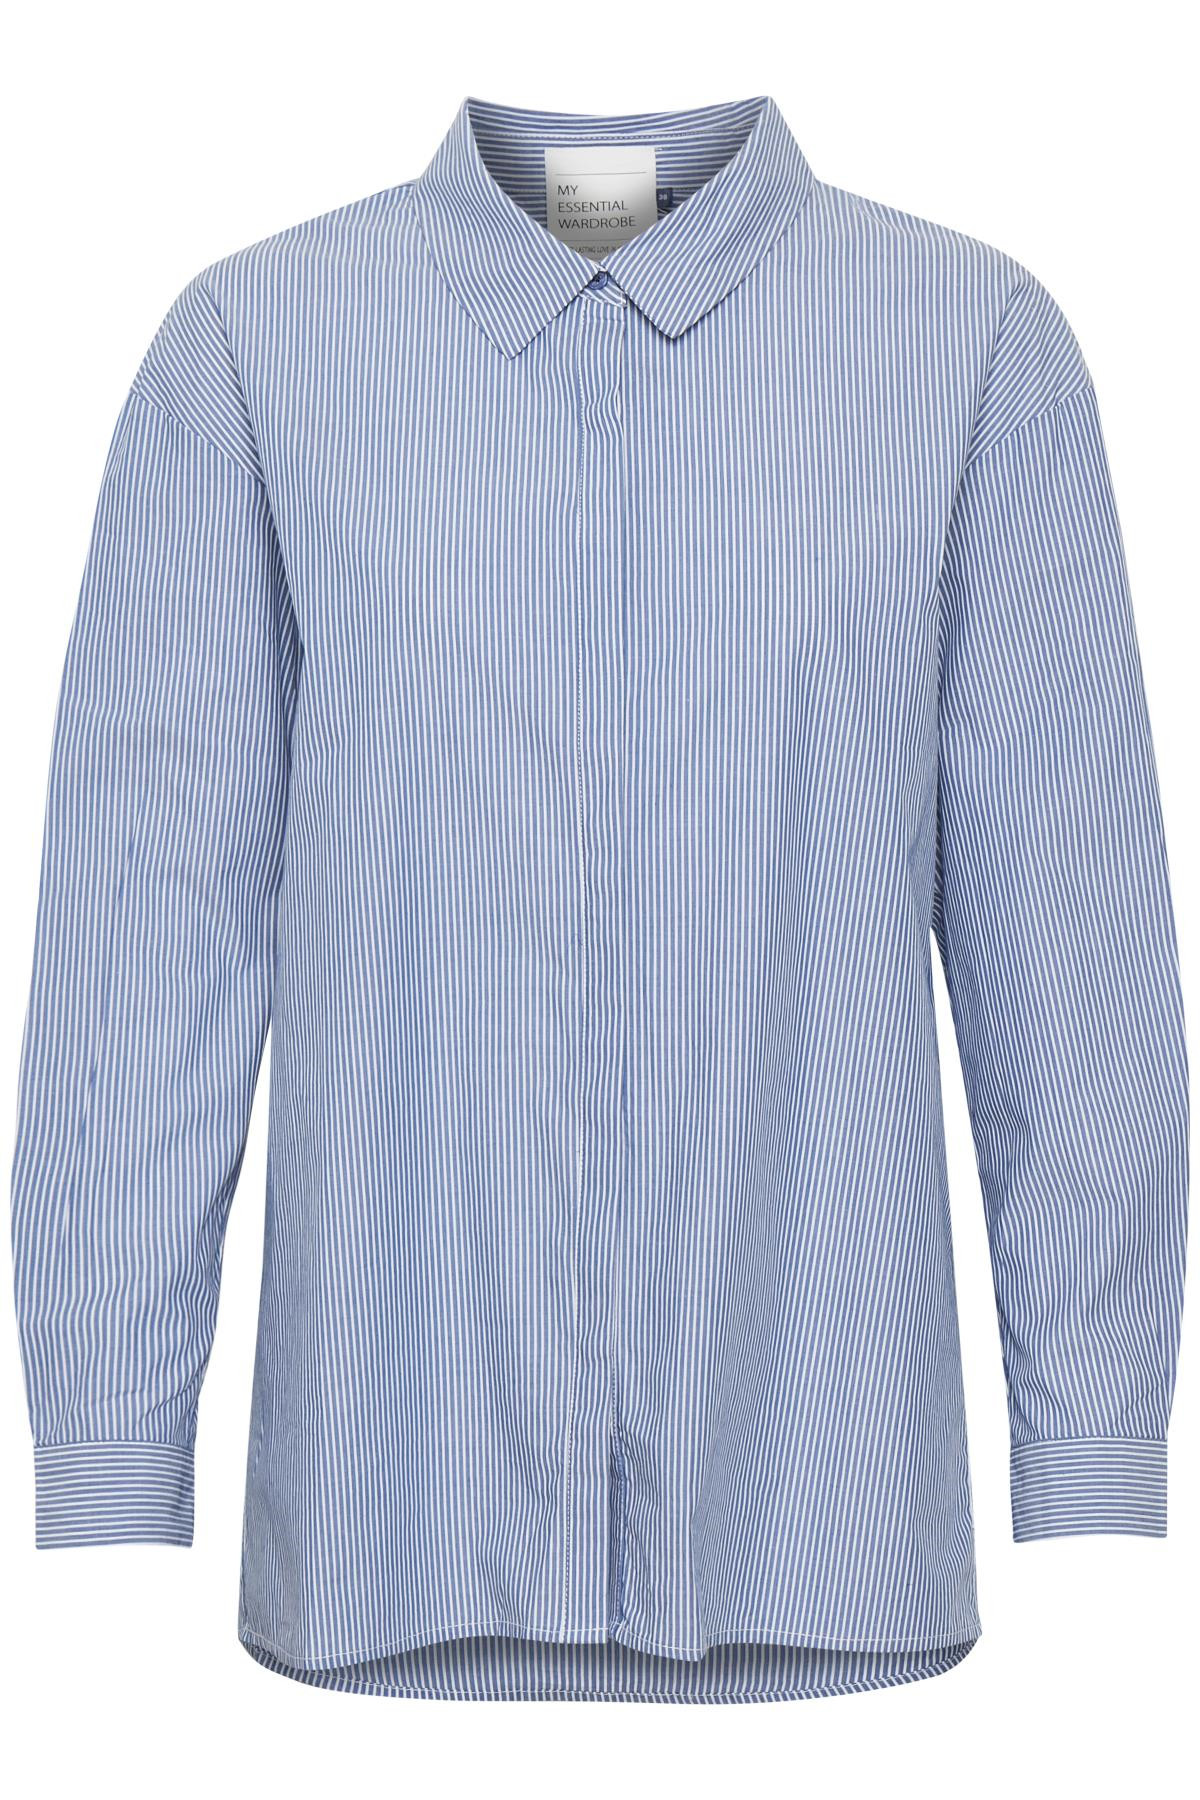 Image of   Denim Hunter 03 THE SHIRT 10702539 S (Striped Medium Blue 38076, 40)